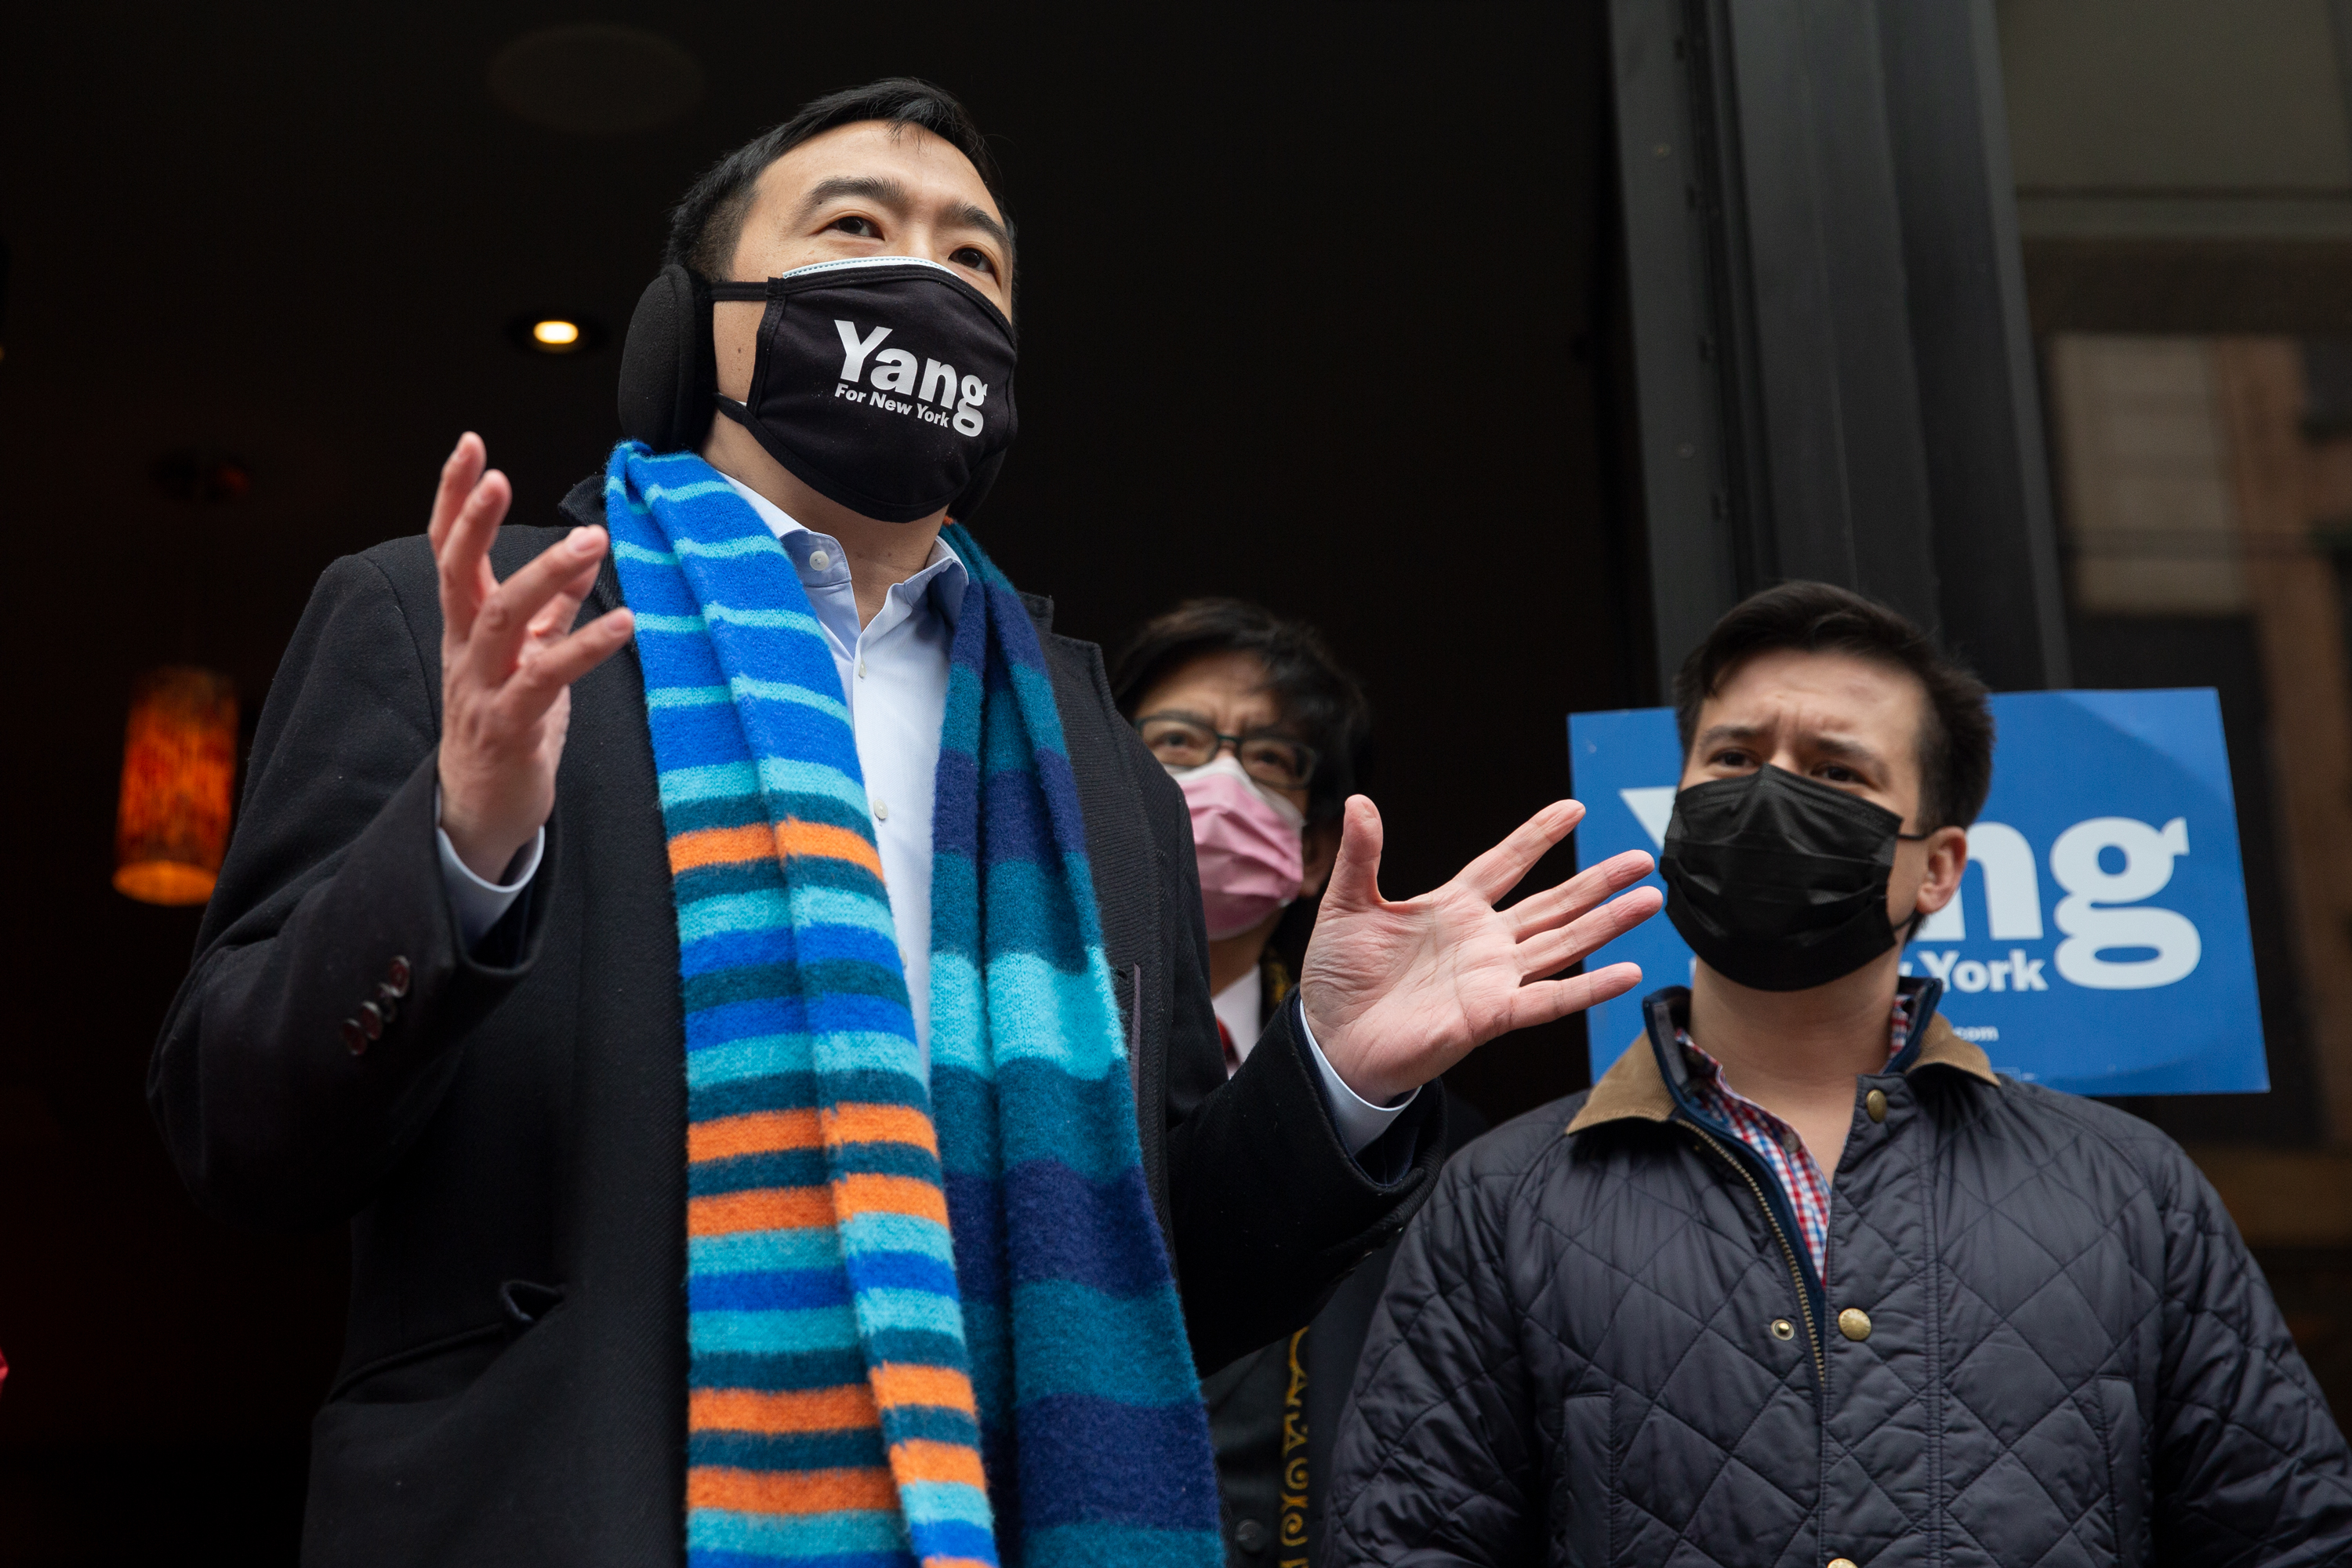 Mayoral candidate Andrew Yang speaks in Chinatown, Jan. 28, 2021.